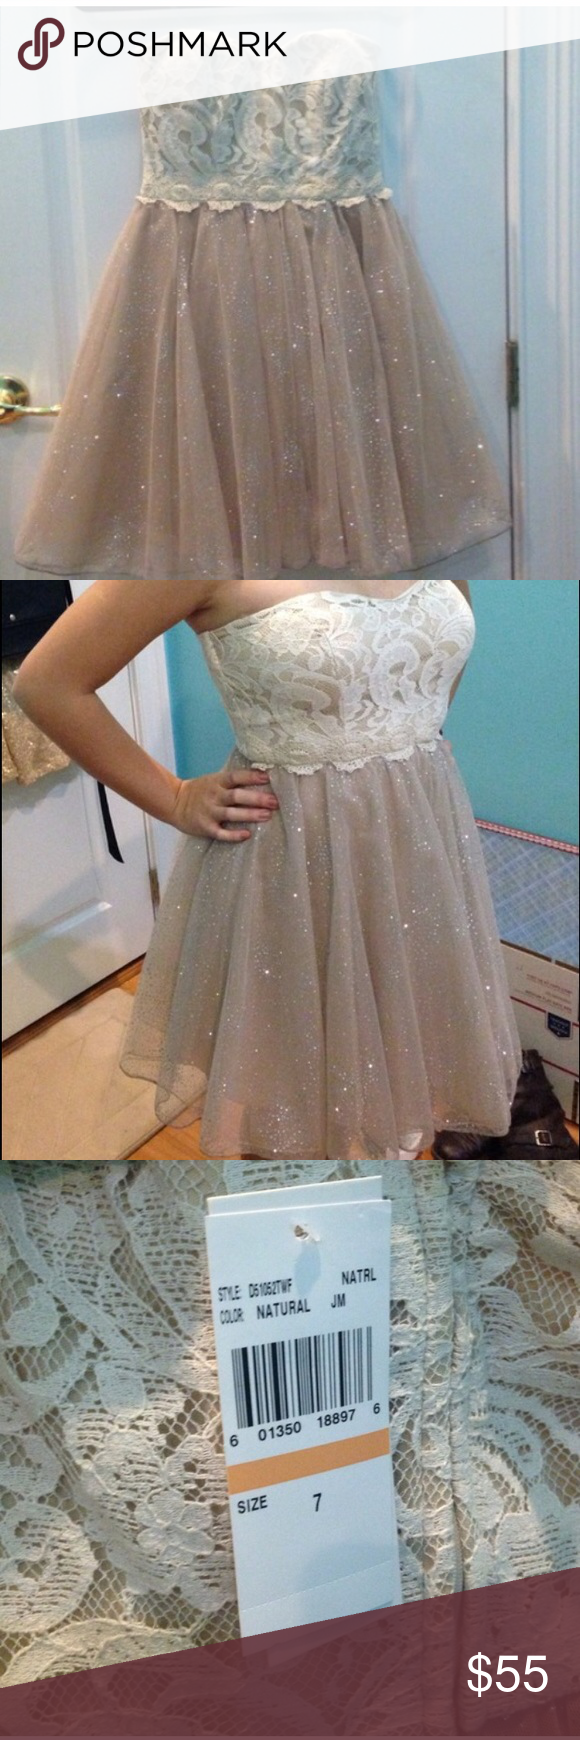 Strapless Dress Brand new and very cute Dresses